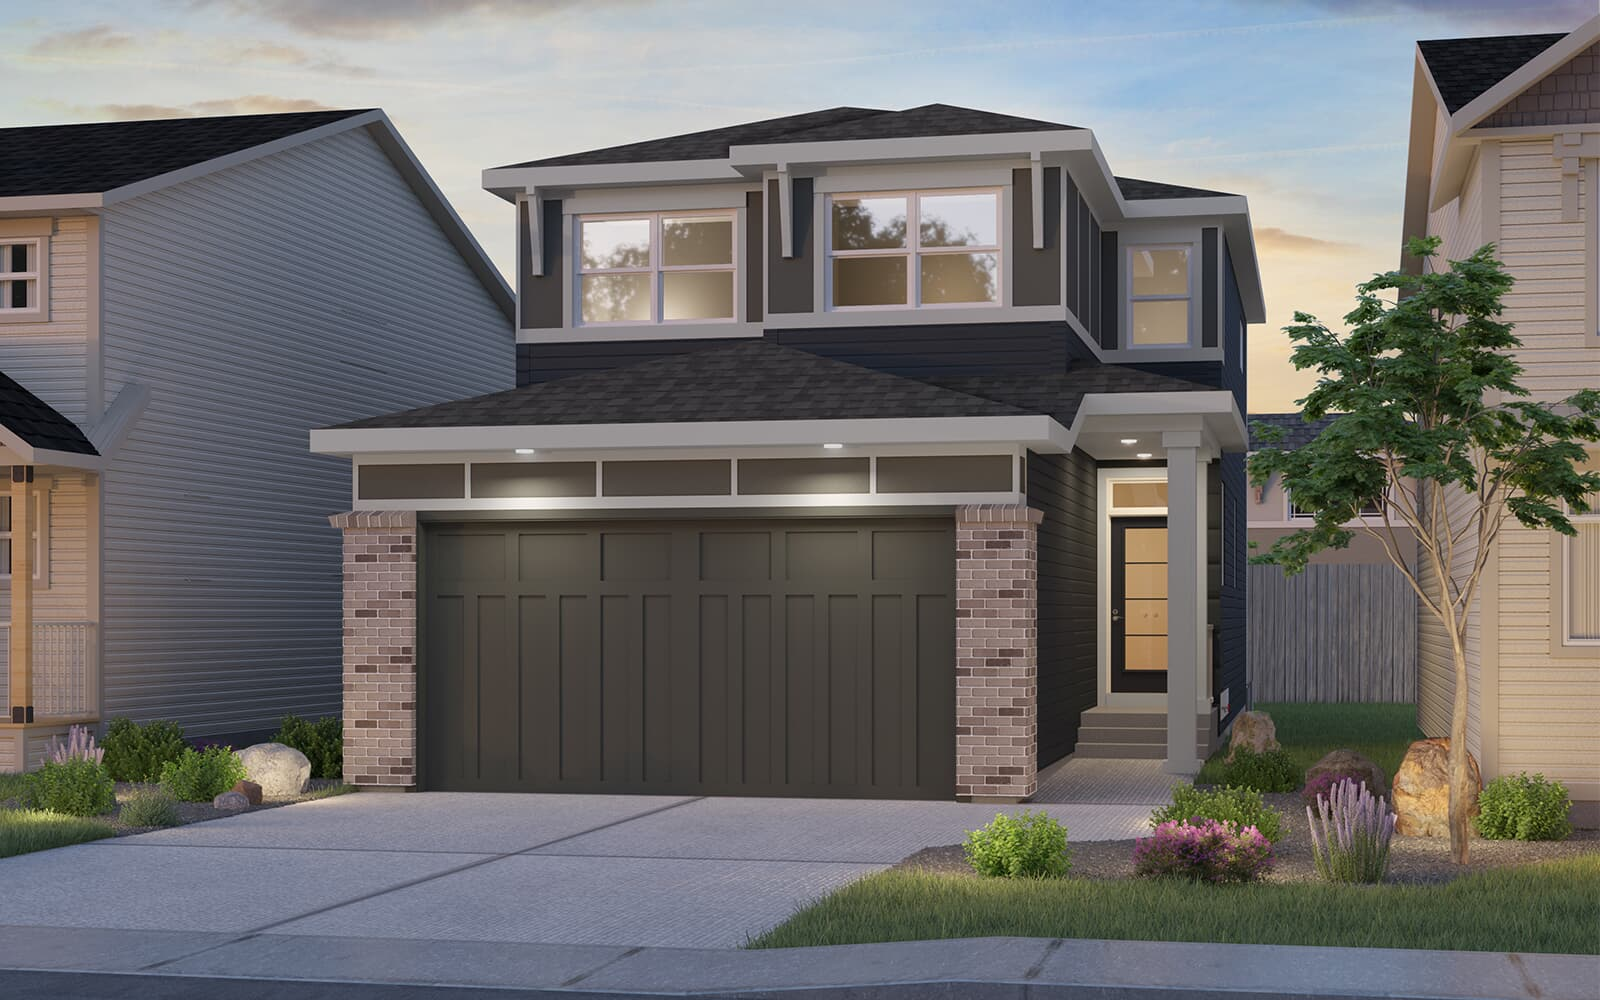 Exterior view of the Logan model by Brookfield Residential in Calgary.